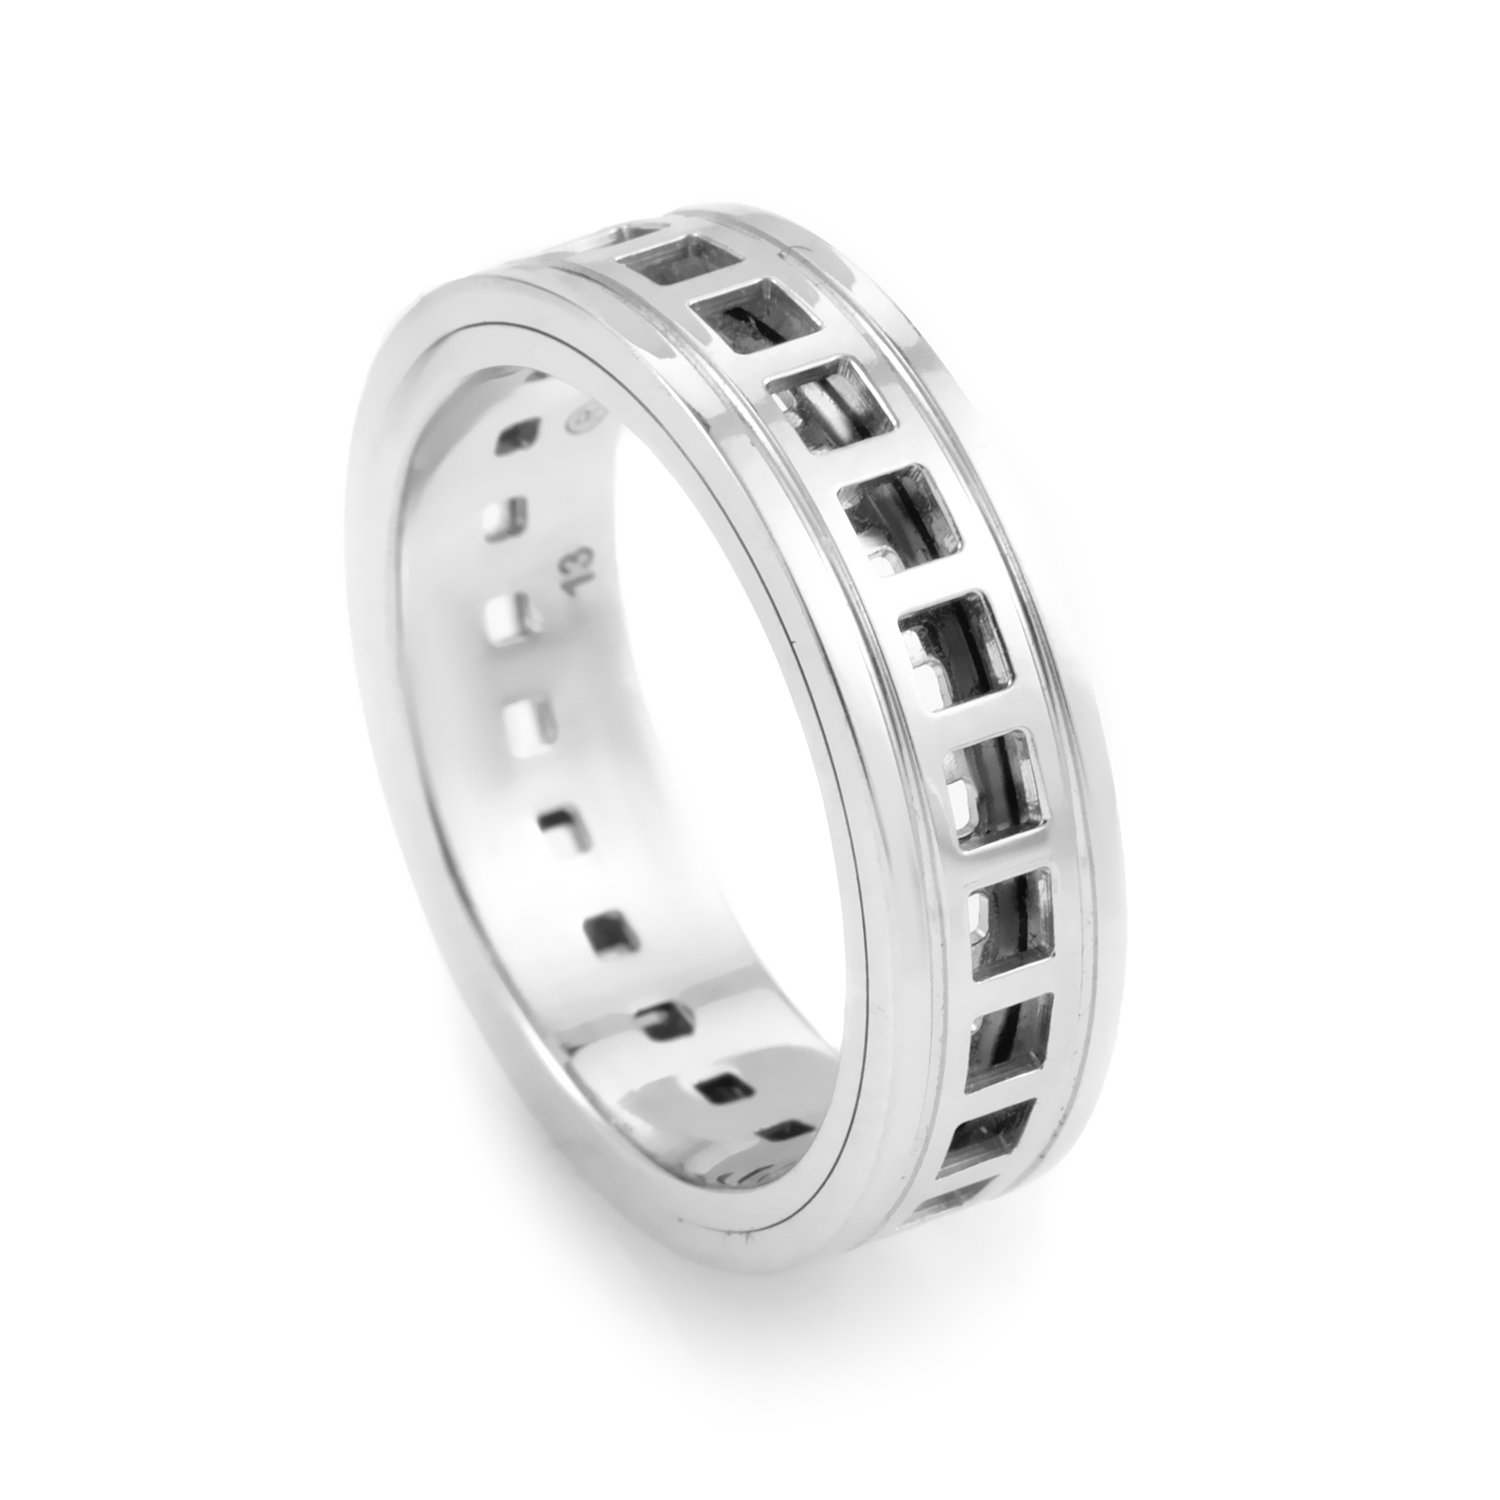 Basso Women's 18K White Gold Perforated Band Ring 03088142